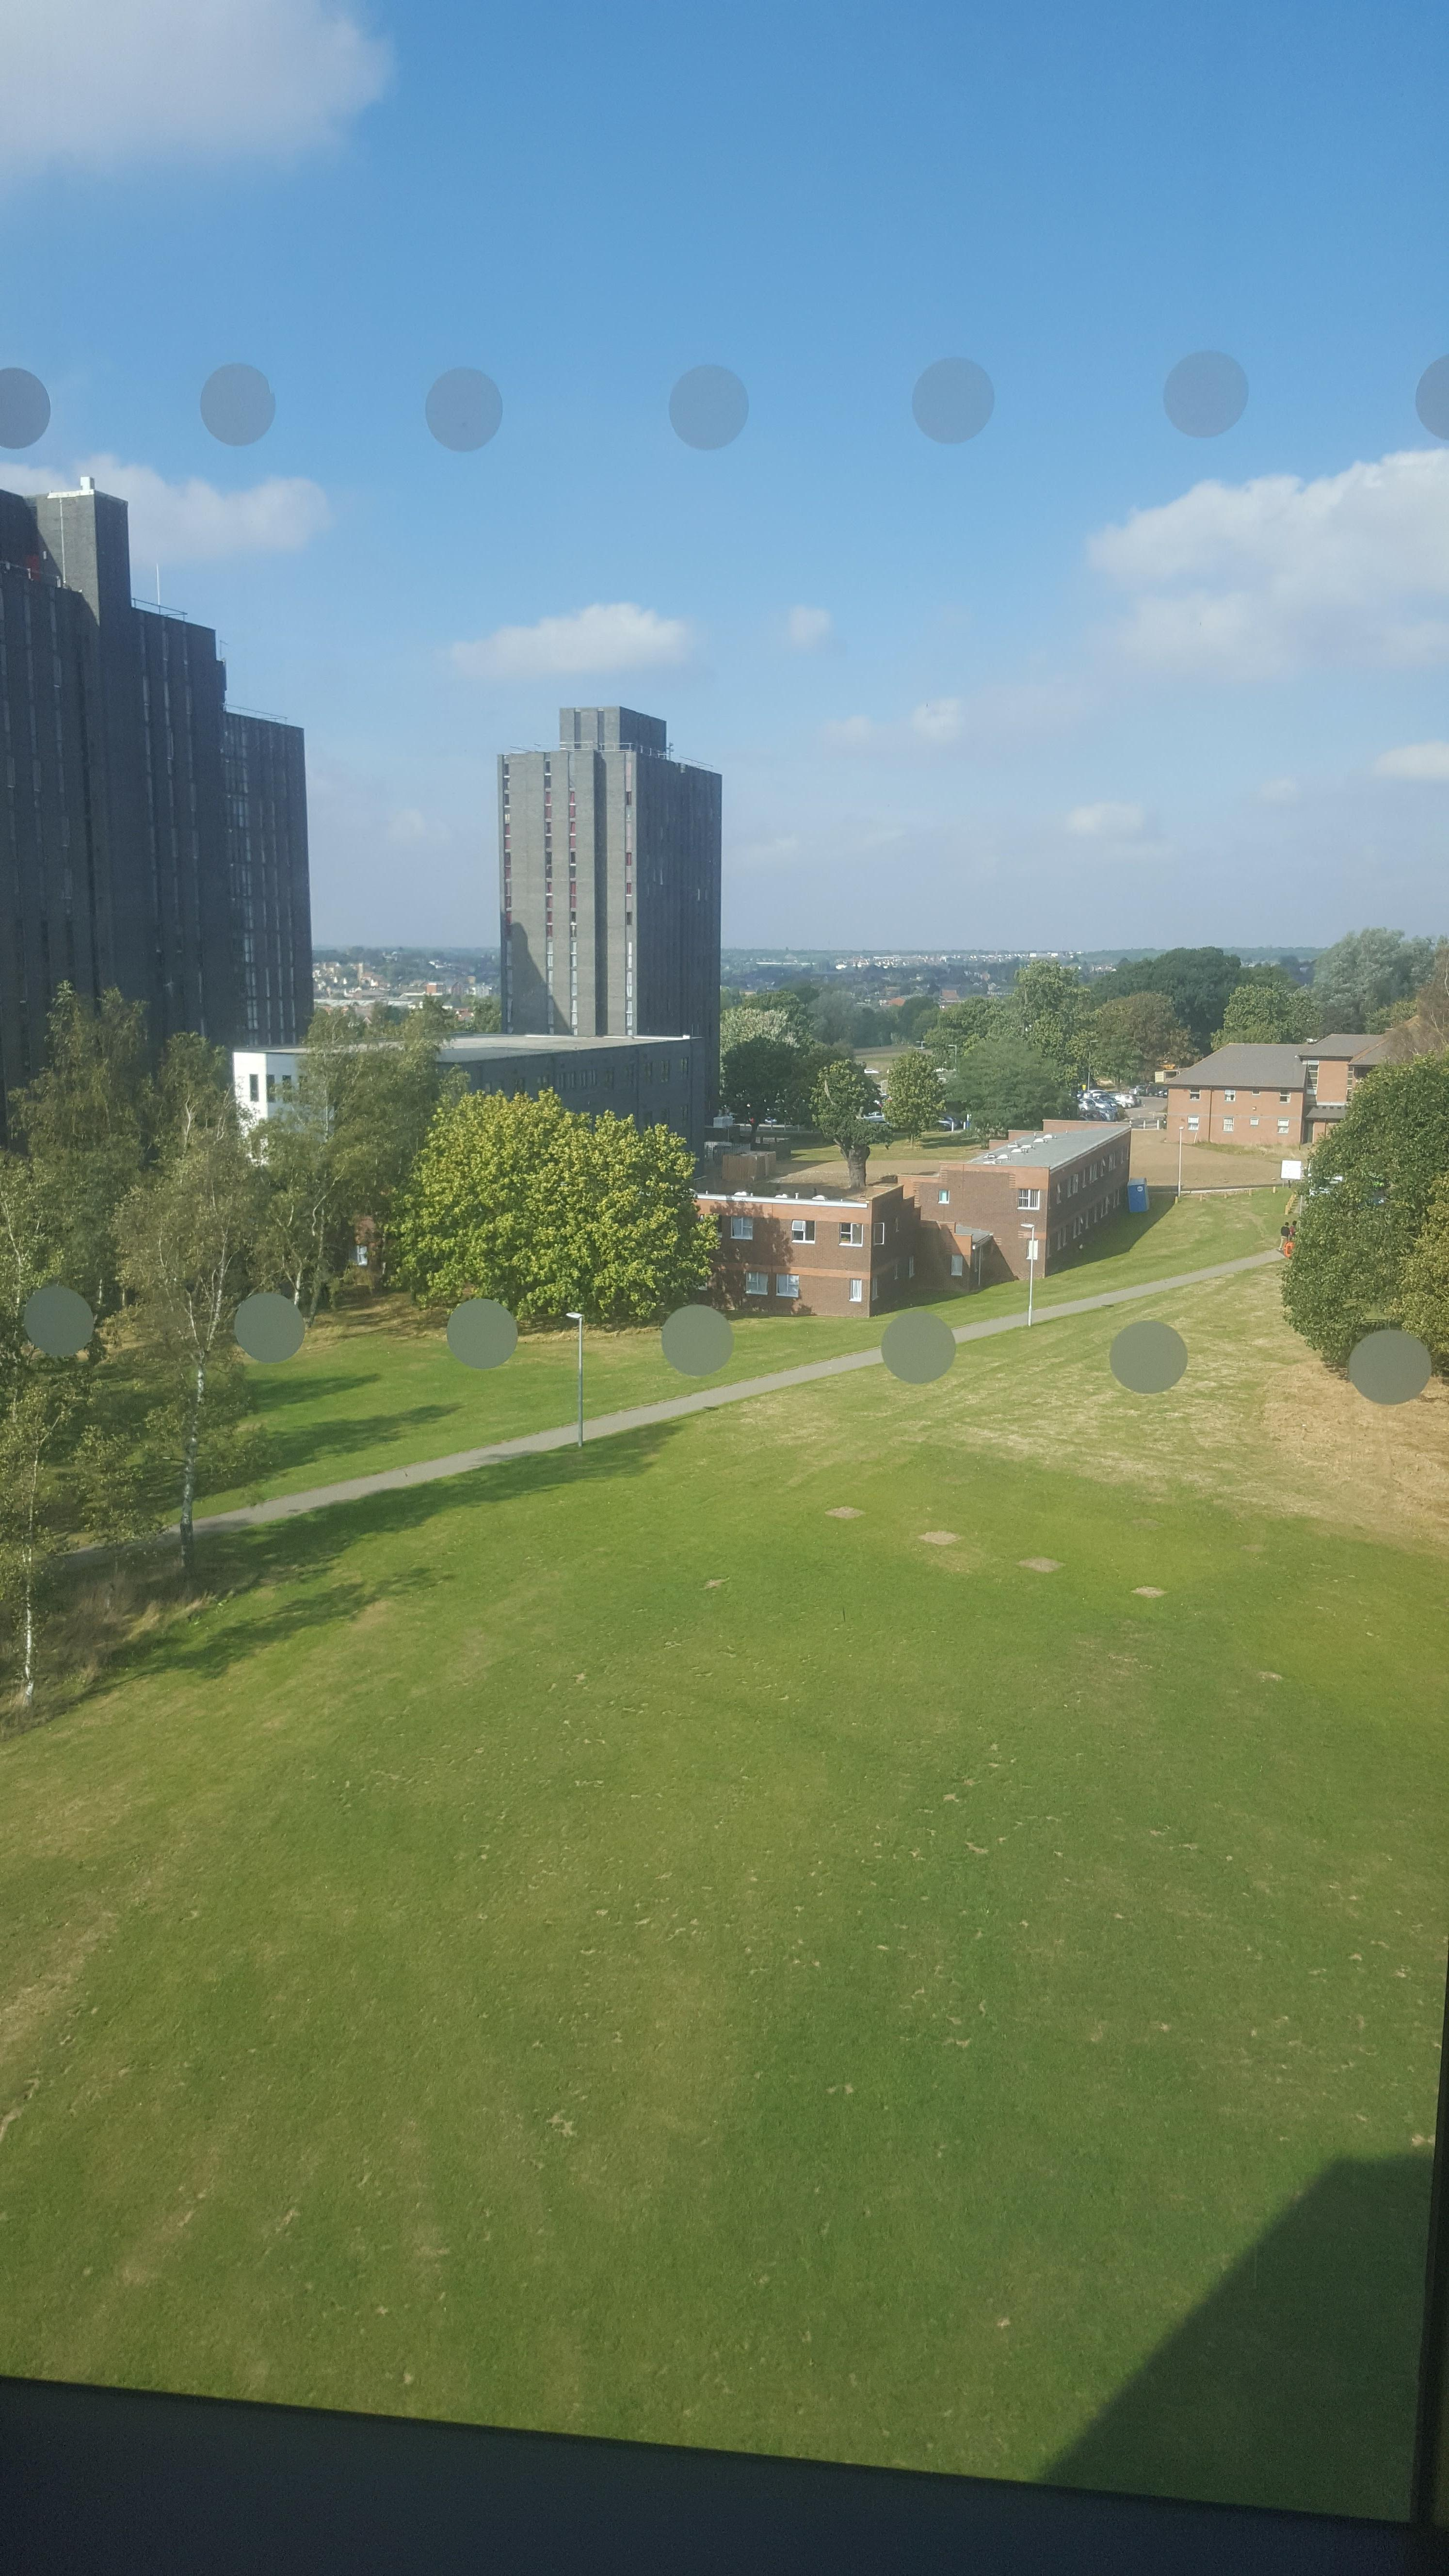 The view of Essex University from the Albert Sloman Library